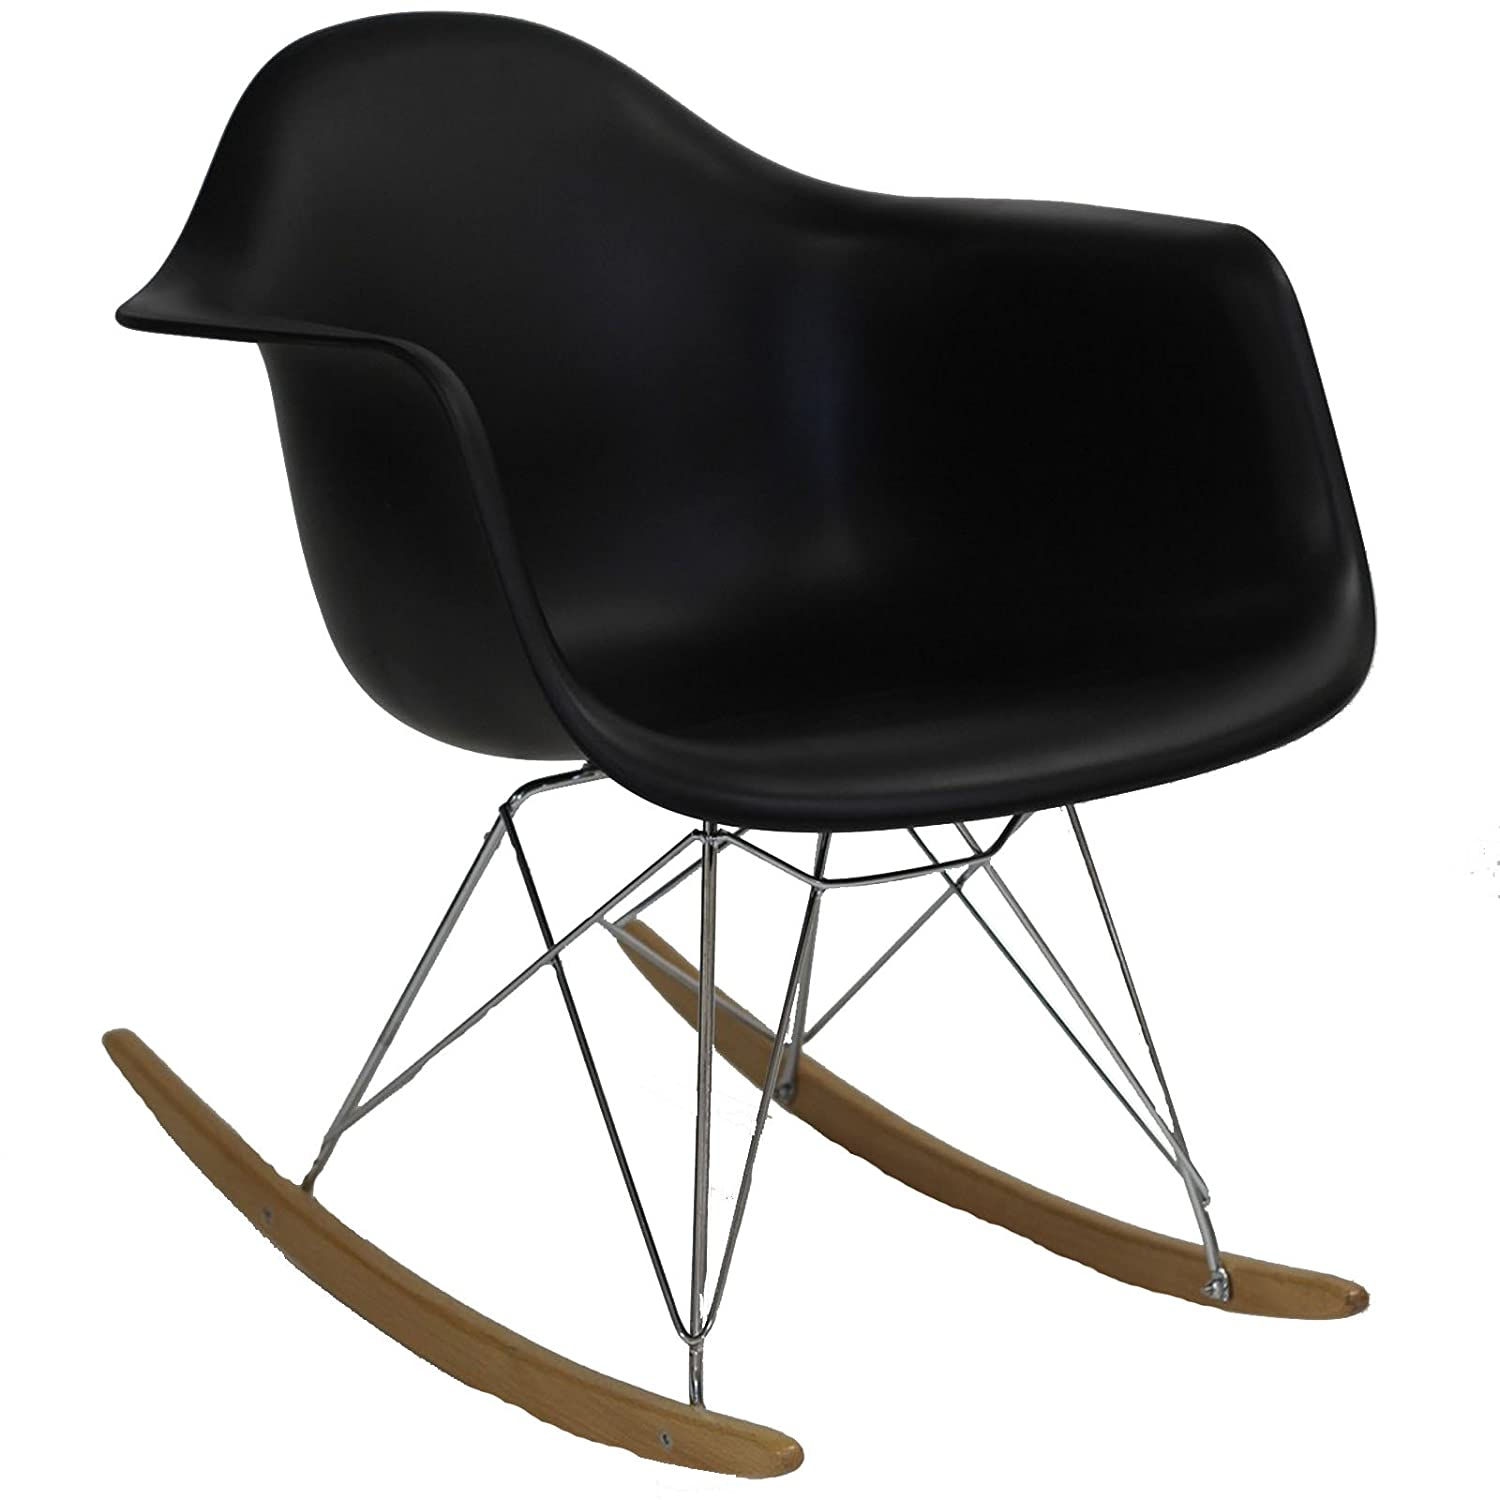 Eames plastic rocking chair - Amazon Com Modway Molded Plastic Armchair Rocker In Black Kitchen Dining